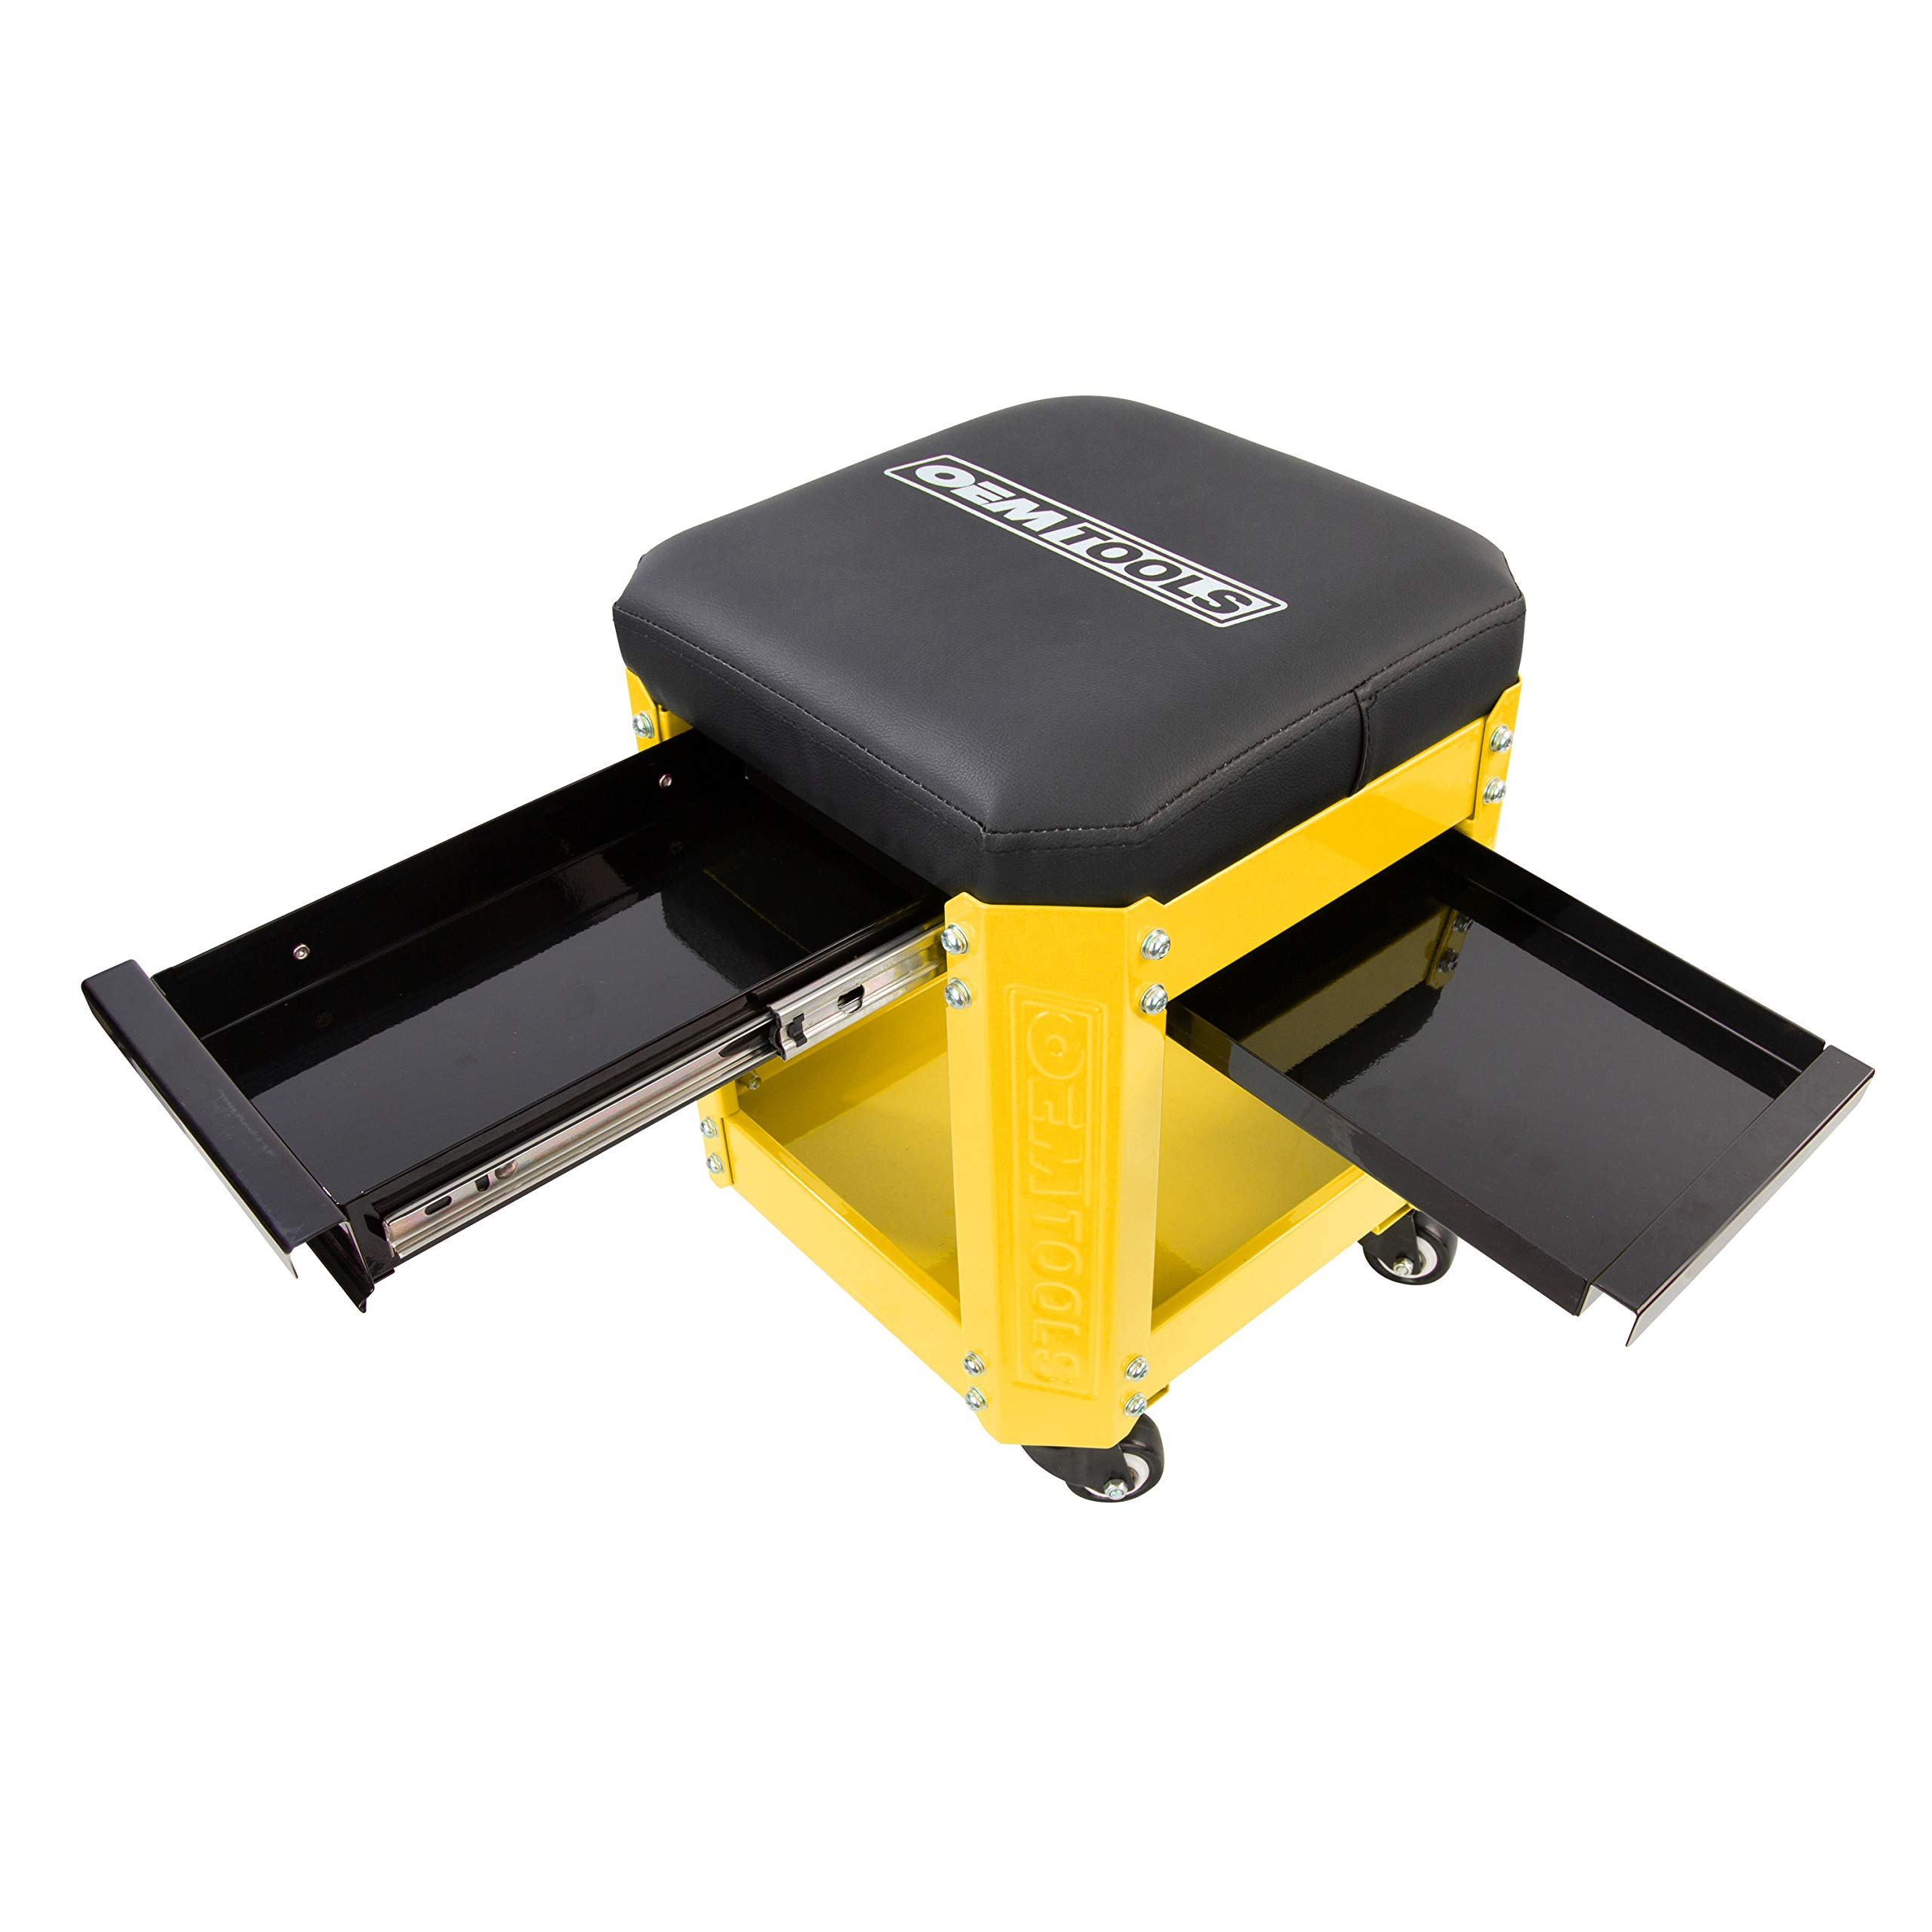 OEMTOOL 24999 Yellow Rolling Workshop Creeper Seat with 2 Tool Storage Drawers Under Seat Parts Storage Can Holders by OEMTOOLS (Image #2)